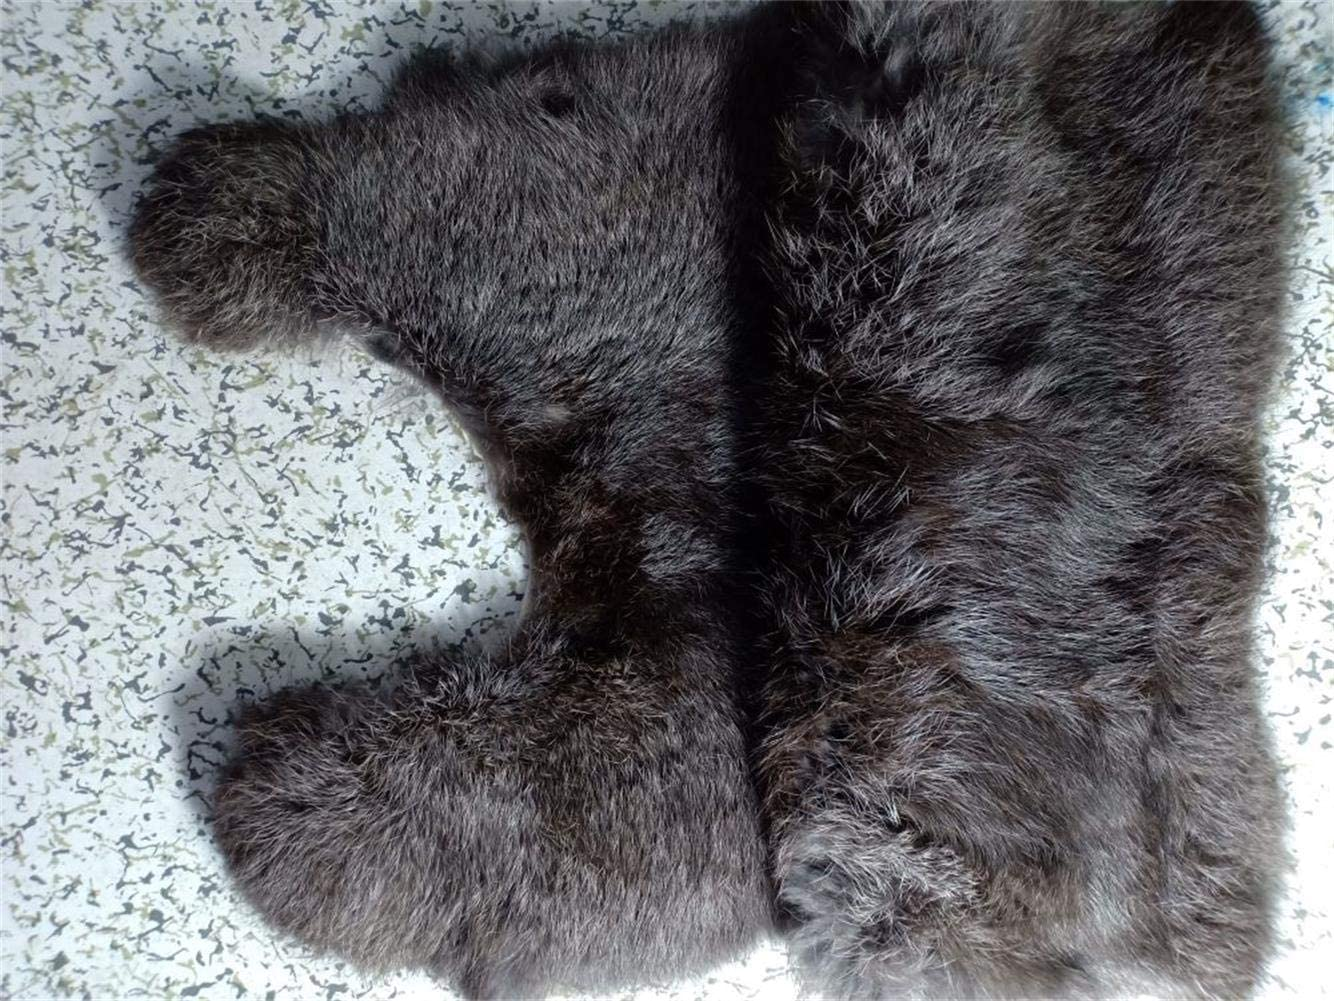 12 x 16Turquoise Natural Tanned Rabbit Fur Pelt Decorative Natural Rabbit Fur Hide With Sewing Quality Leather